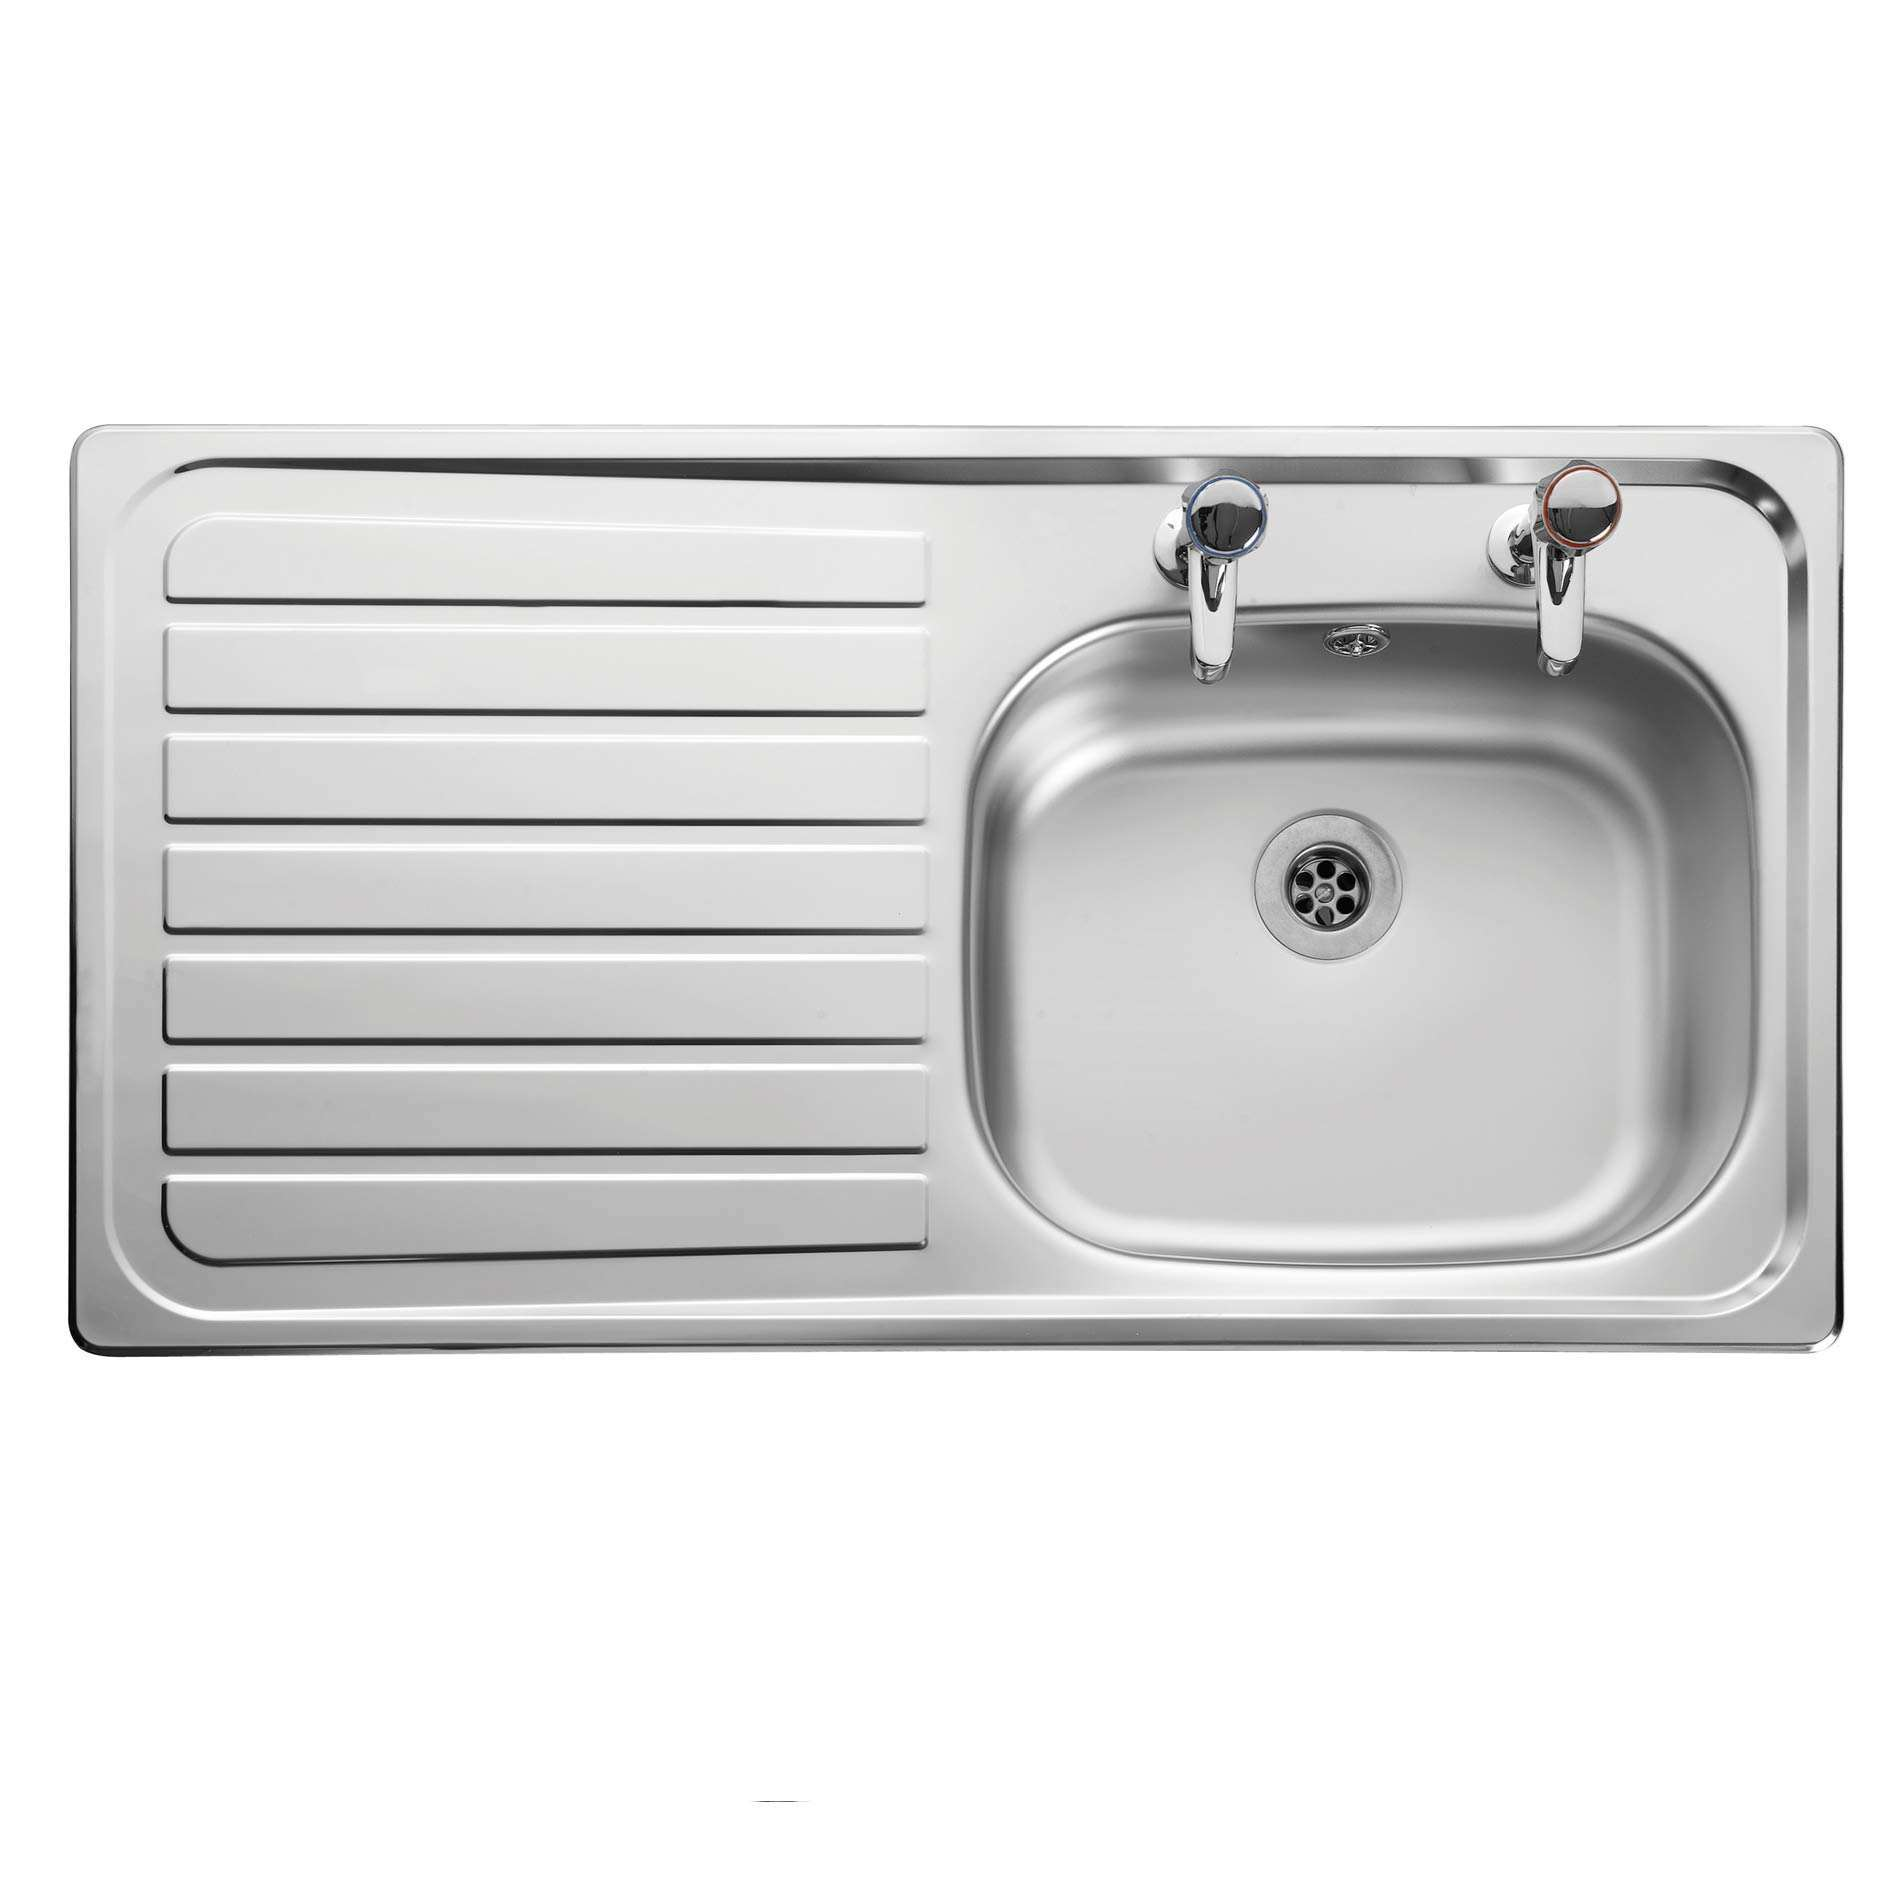 Leisure: Lexin LE95 Stainless Steel Sink - Kitchen Sinks & Taps